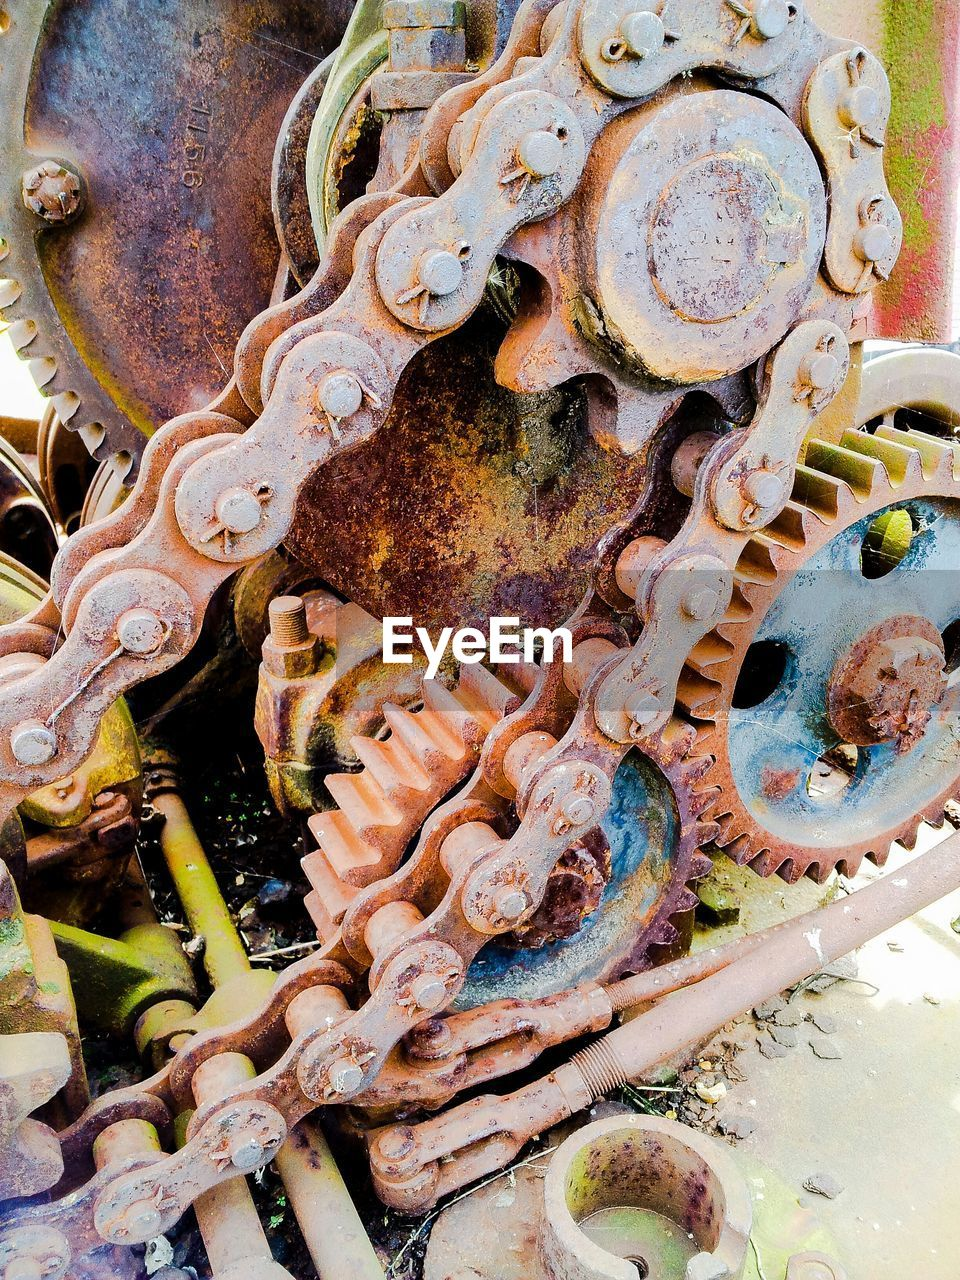 Rusty gears and chain Popular Photos Taking Photos Color Photography Getting Inspired Check This Out Eye4photography  Street Photography Rust EyeEm Best Shots Gears Industrial Rustygoodness Machinery Machine Part Old Color Colors Backgrounds Background Textures And Surfaces Textured  Texture Chain Colorsplash EyeEm Gallery